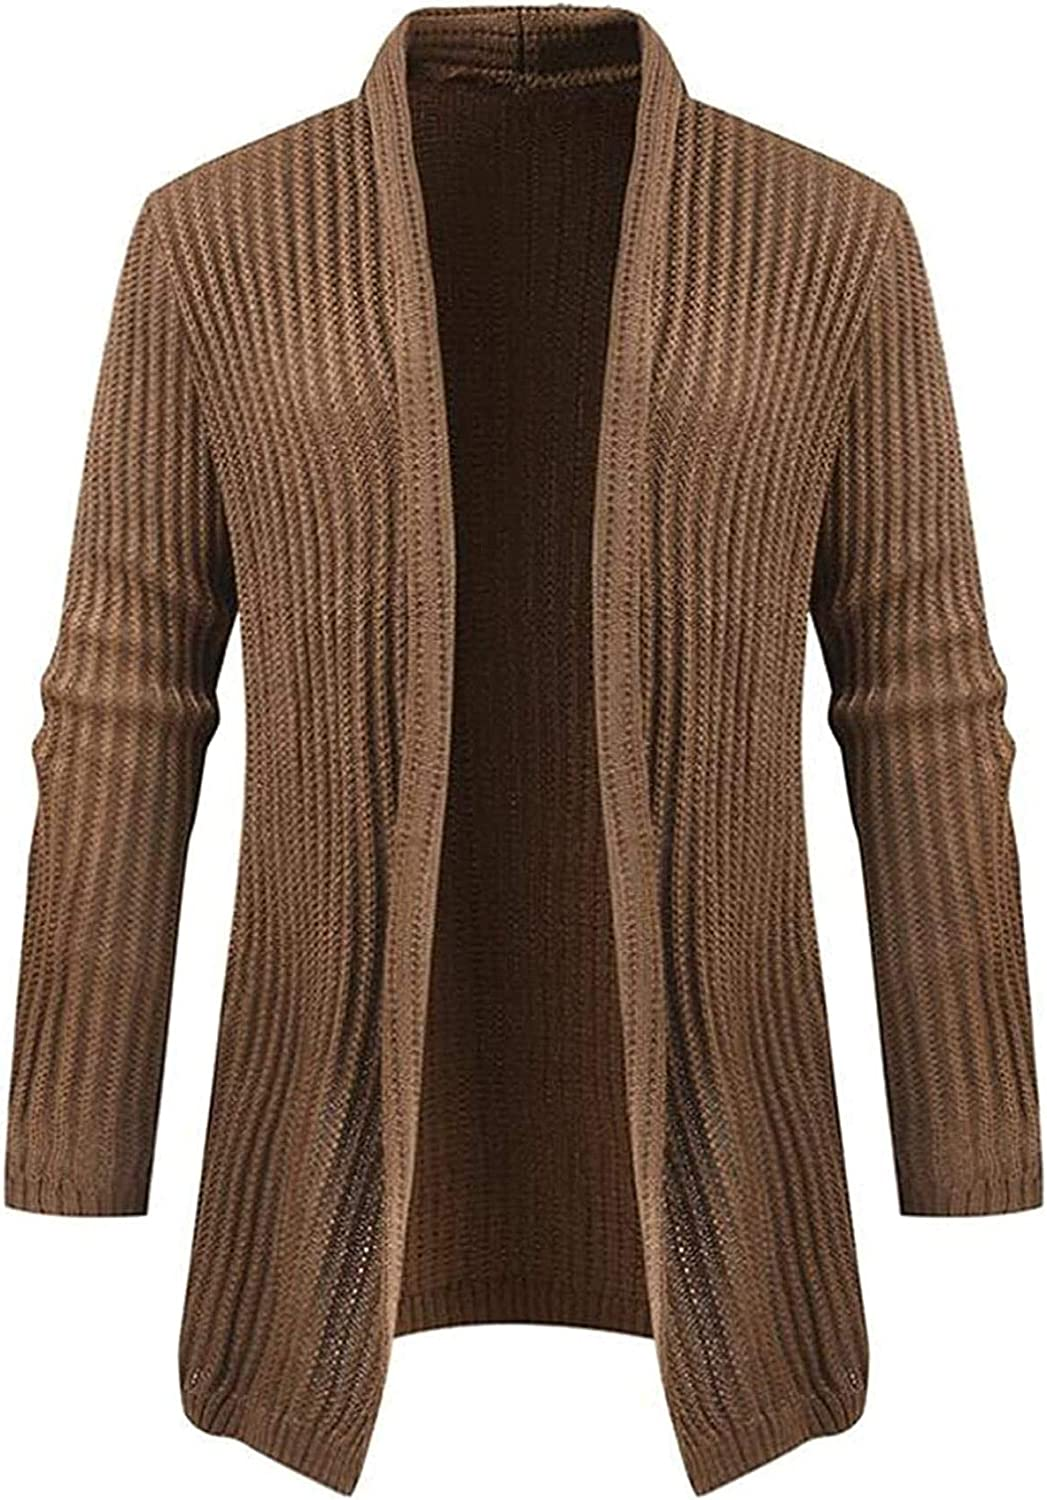 Cardigan Sweater Men Casual Knitted Long Sleeve Solid Color Slim Sweaters Youth Warm Men Cardigan